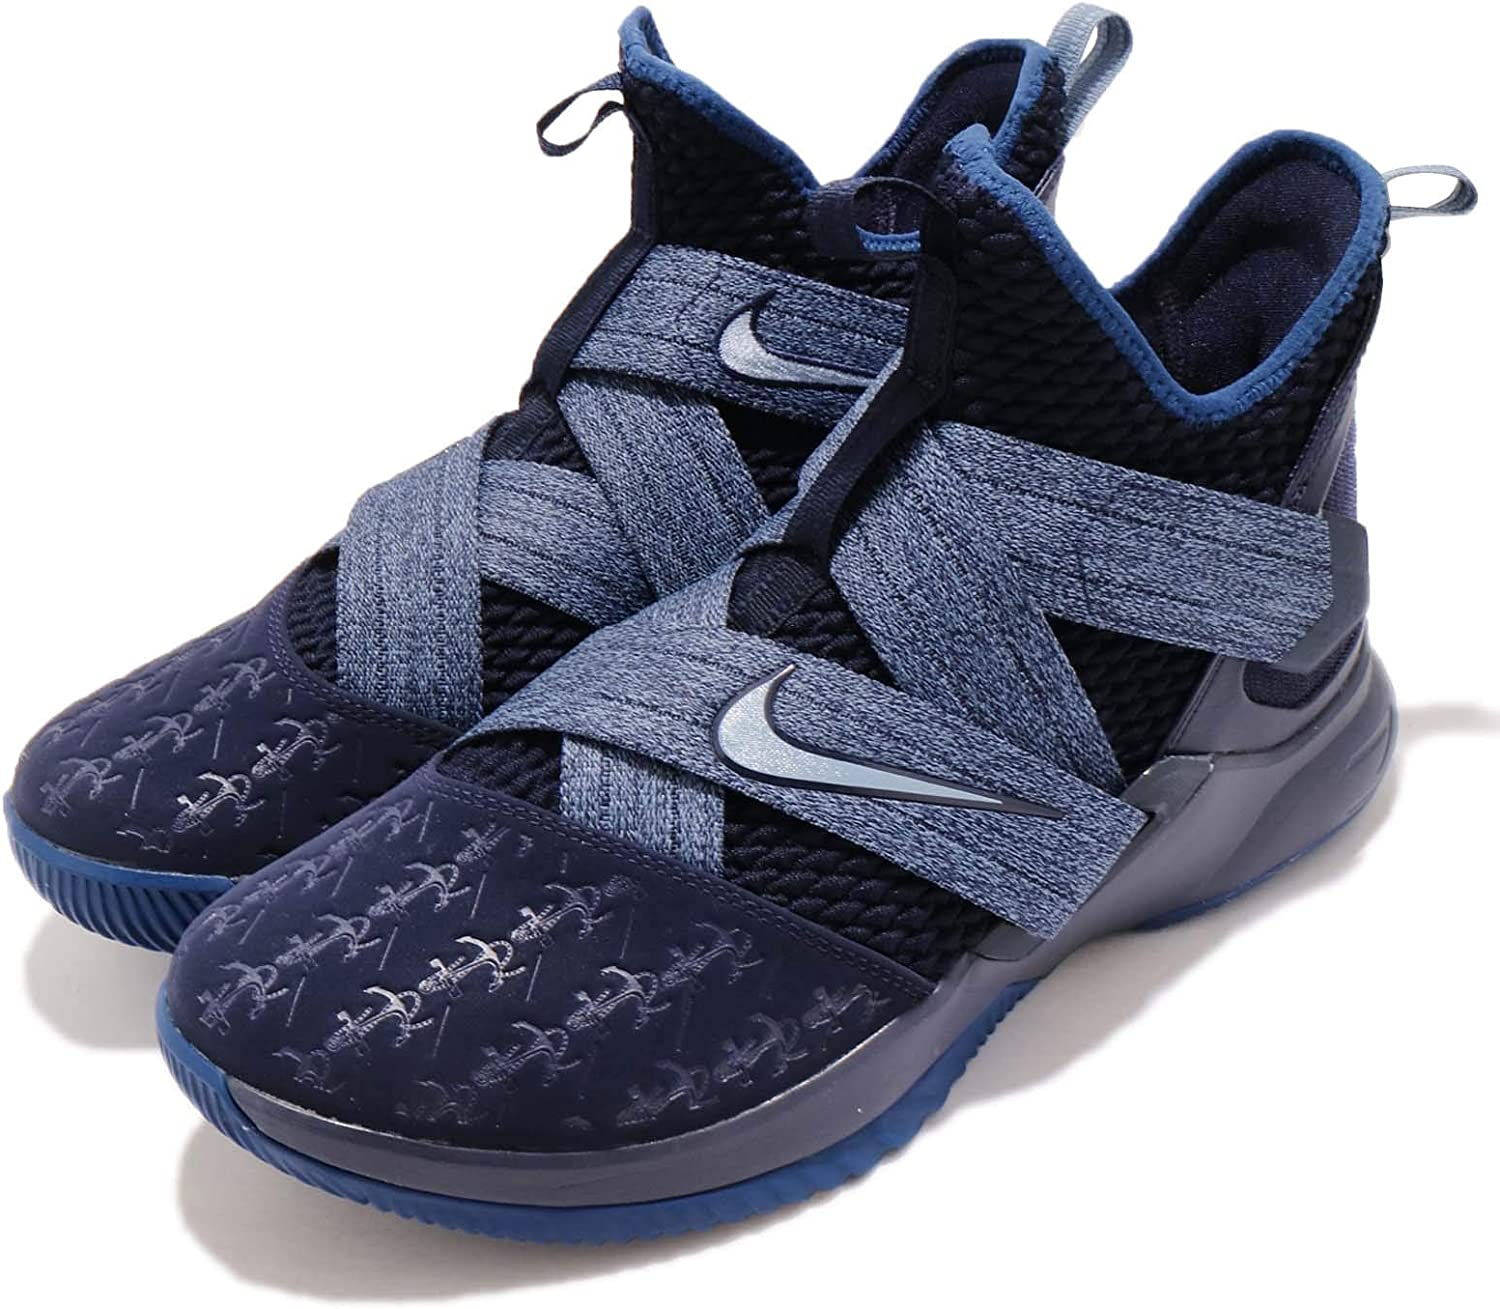 Lebron Soldier XII EP, Blackened Blue